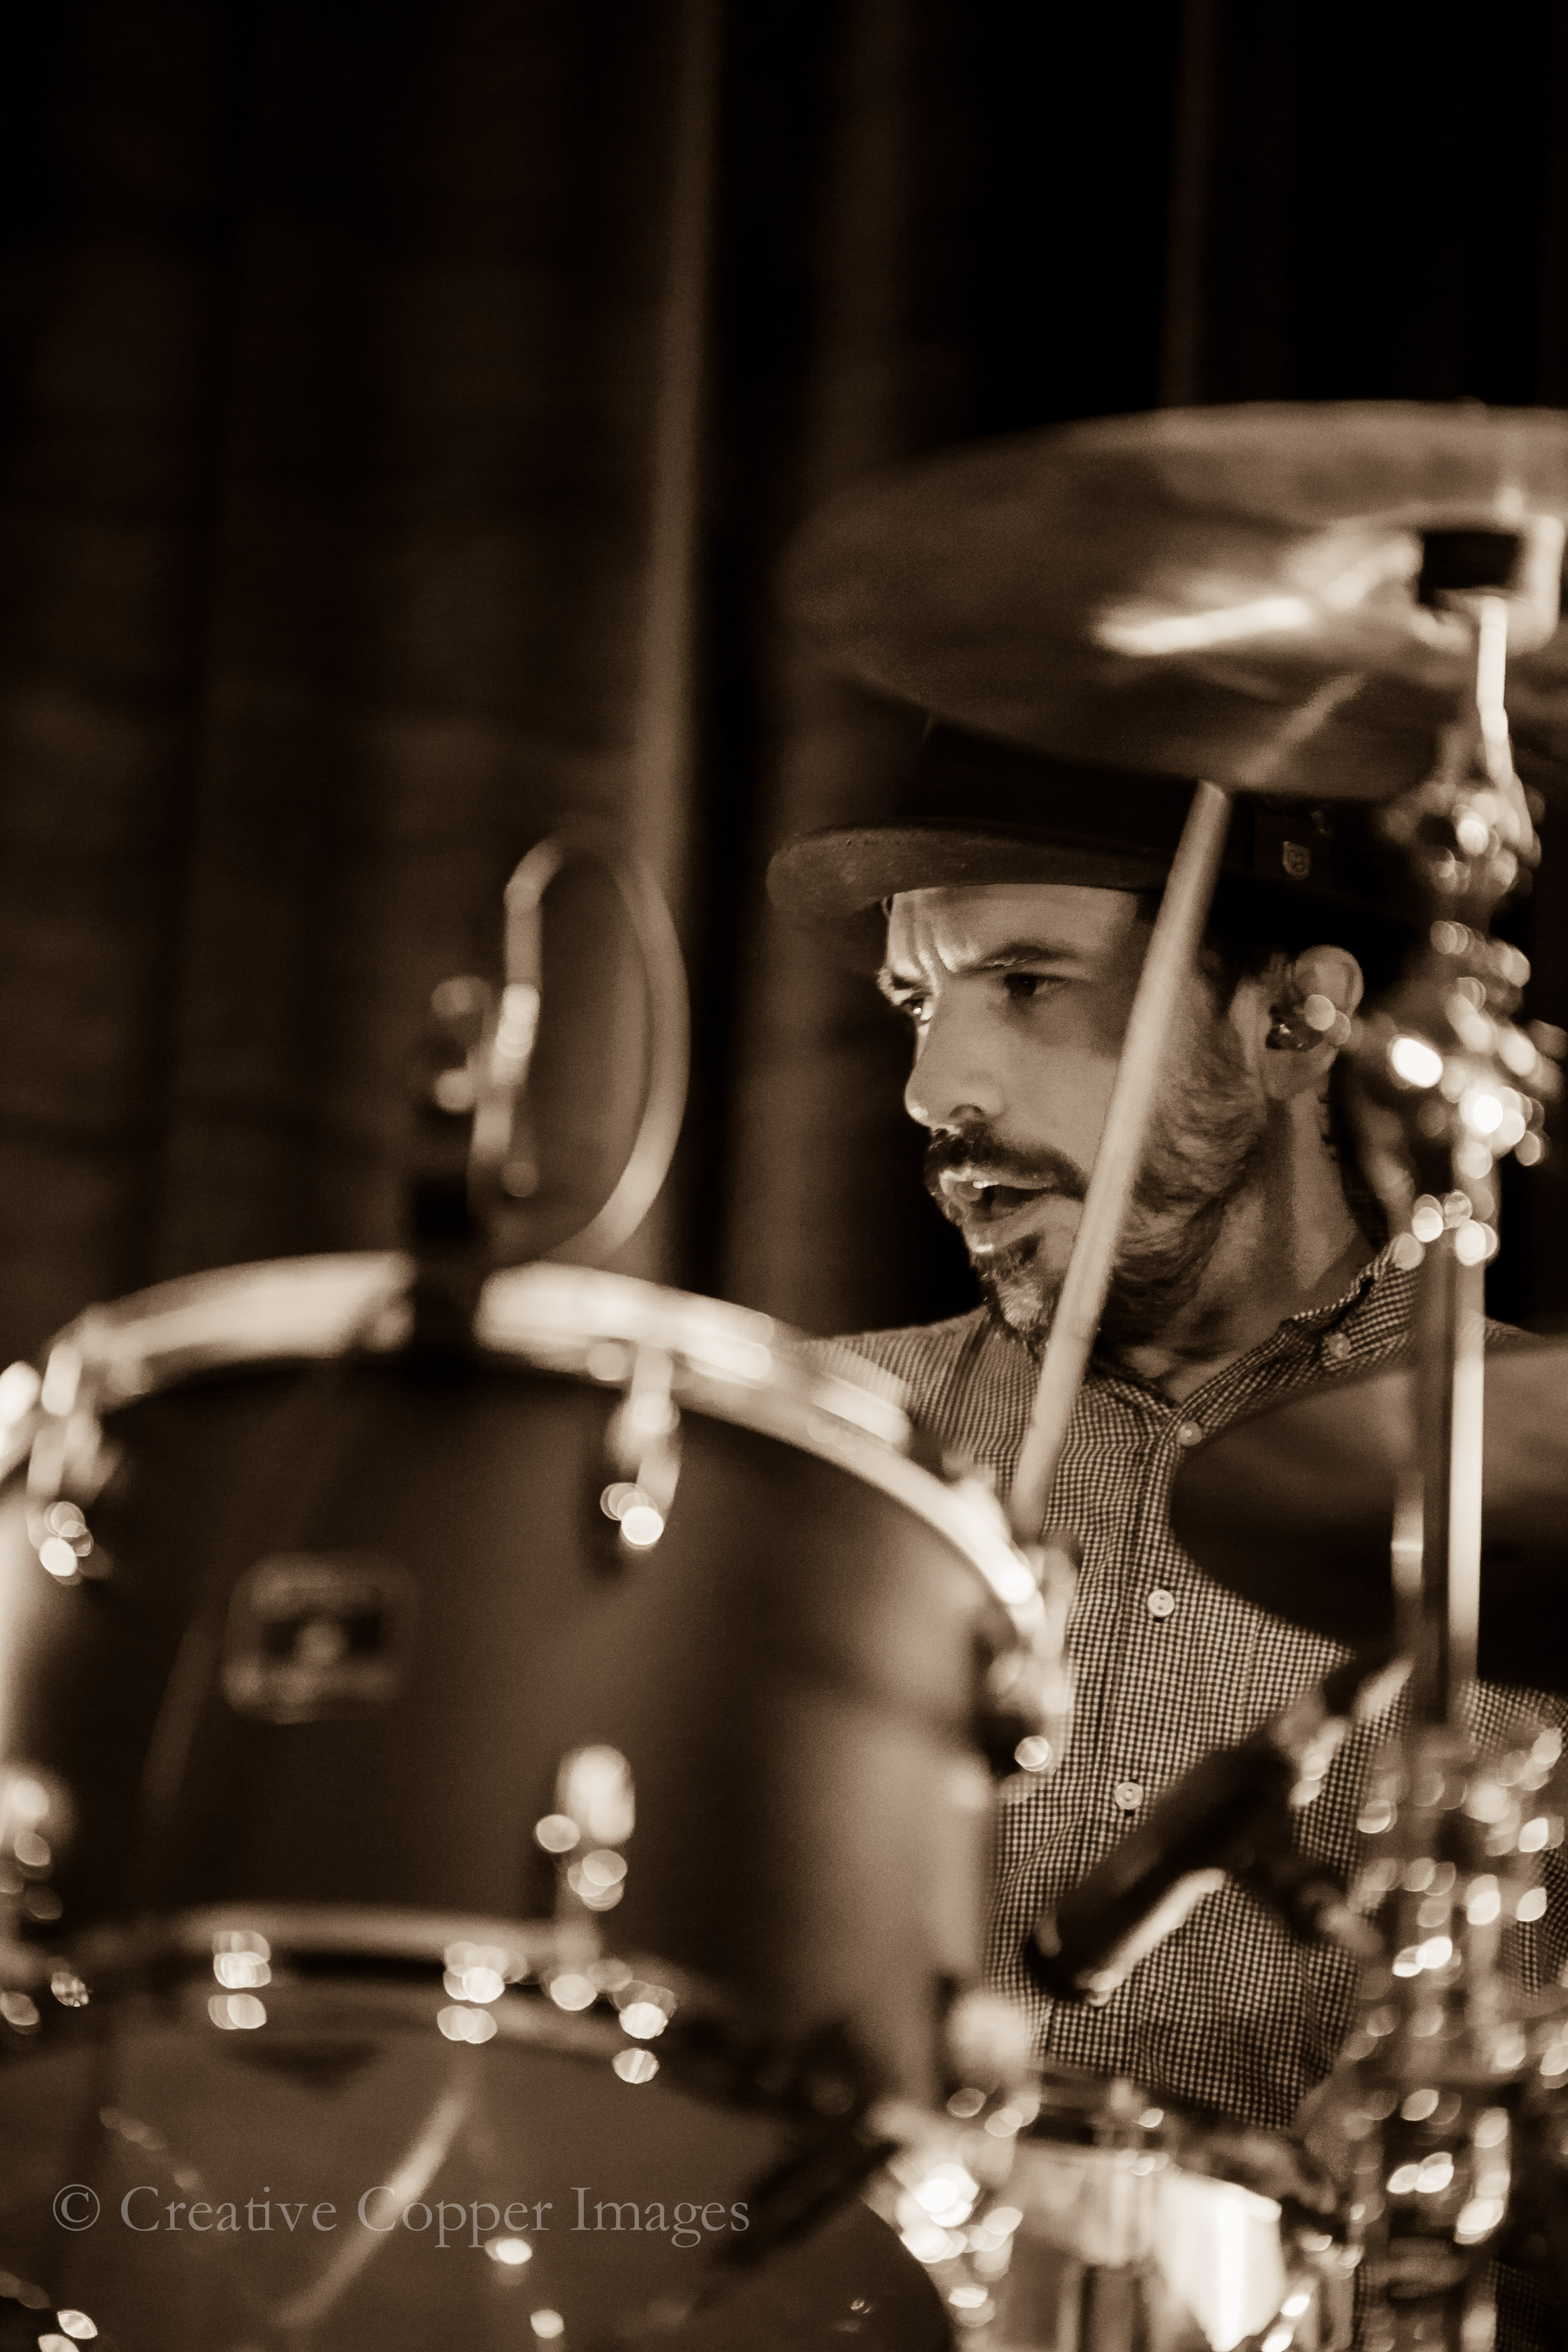 Daren Taylor of The Airborne Toxic Event hides out behind his old fashioned drum kit in Vancouver. Photo by Creative Copper Images.